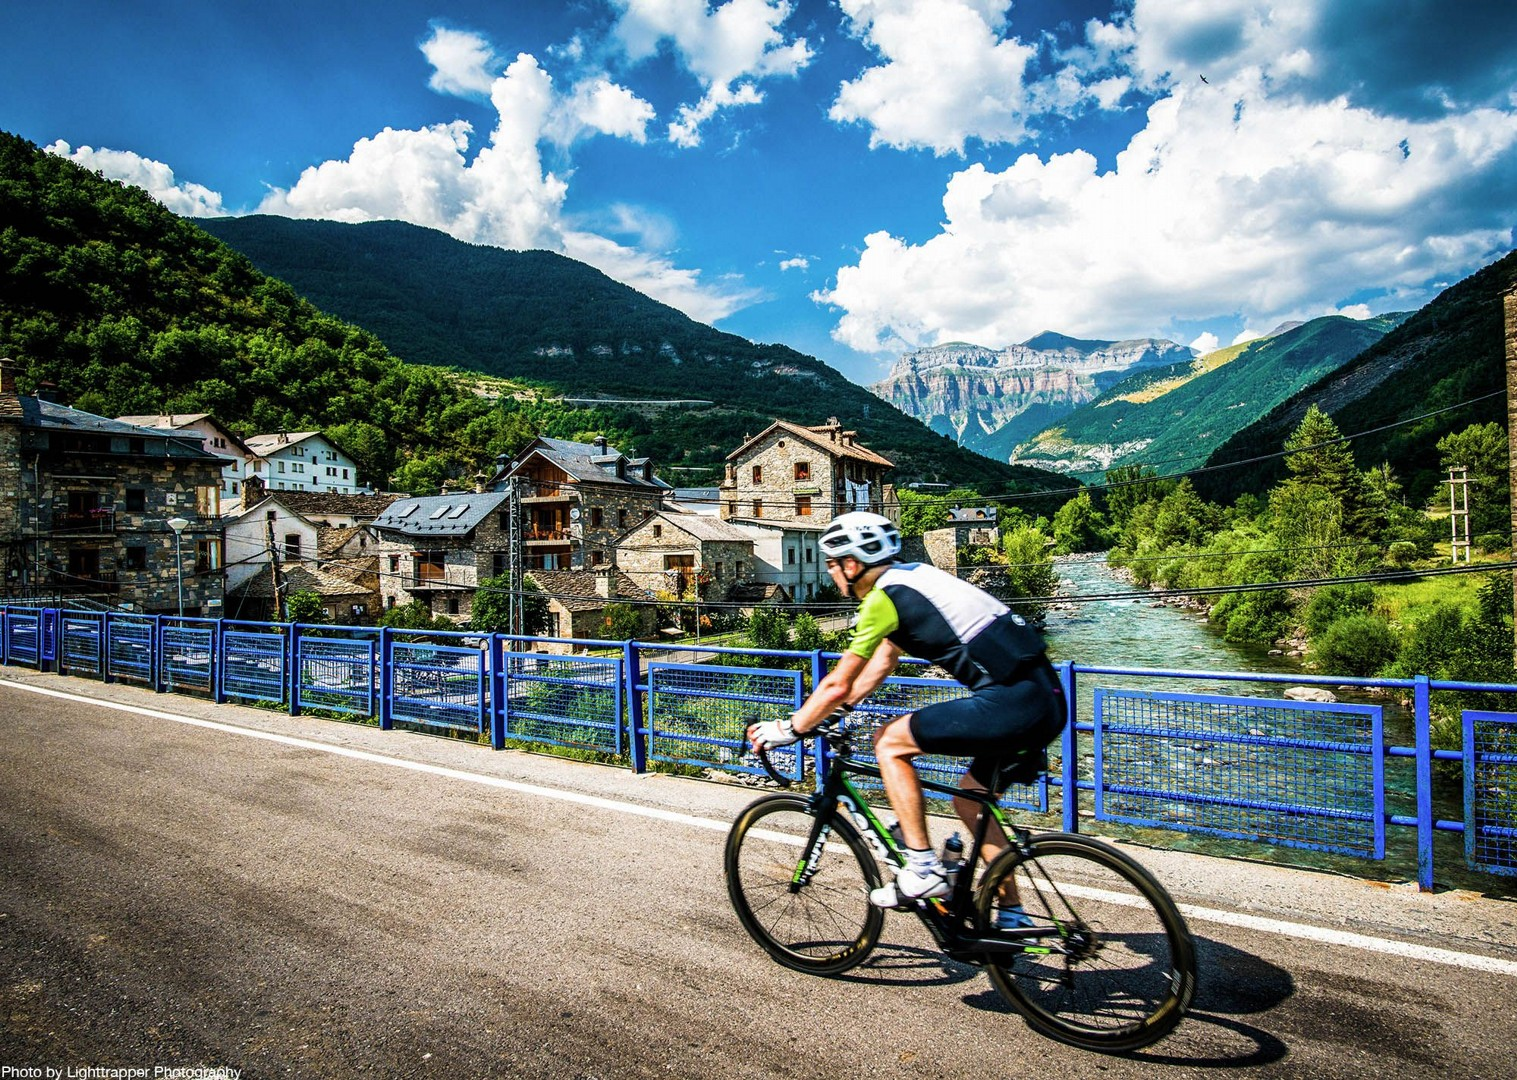 northern-spain-guided-road-cycling-holiday-pyrenees-saddle-skedaddle.jpg - NEW! Spain - Spanish Pyrenees Coast to Coast - Road Cycling